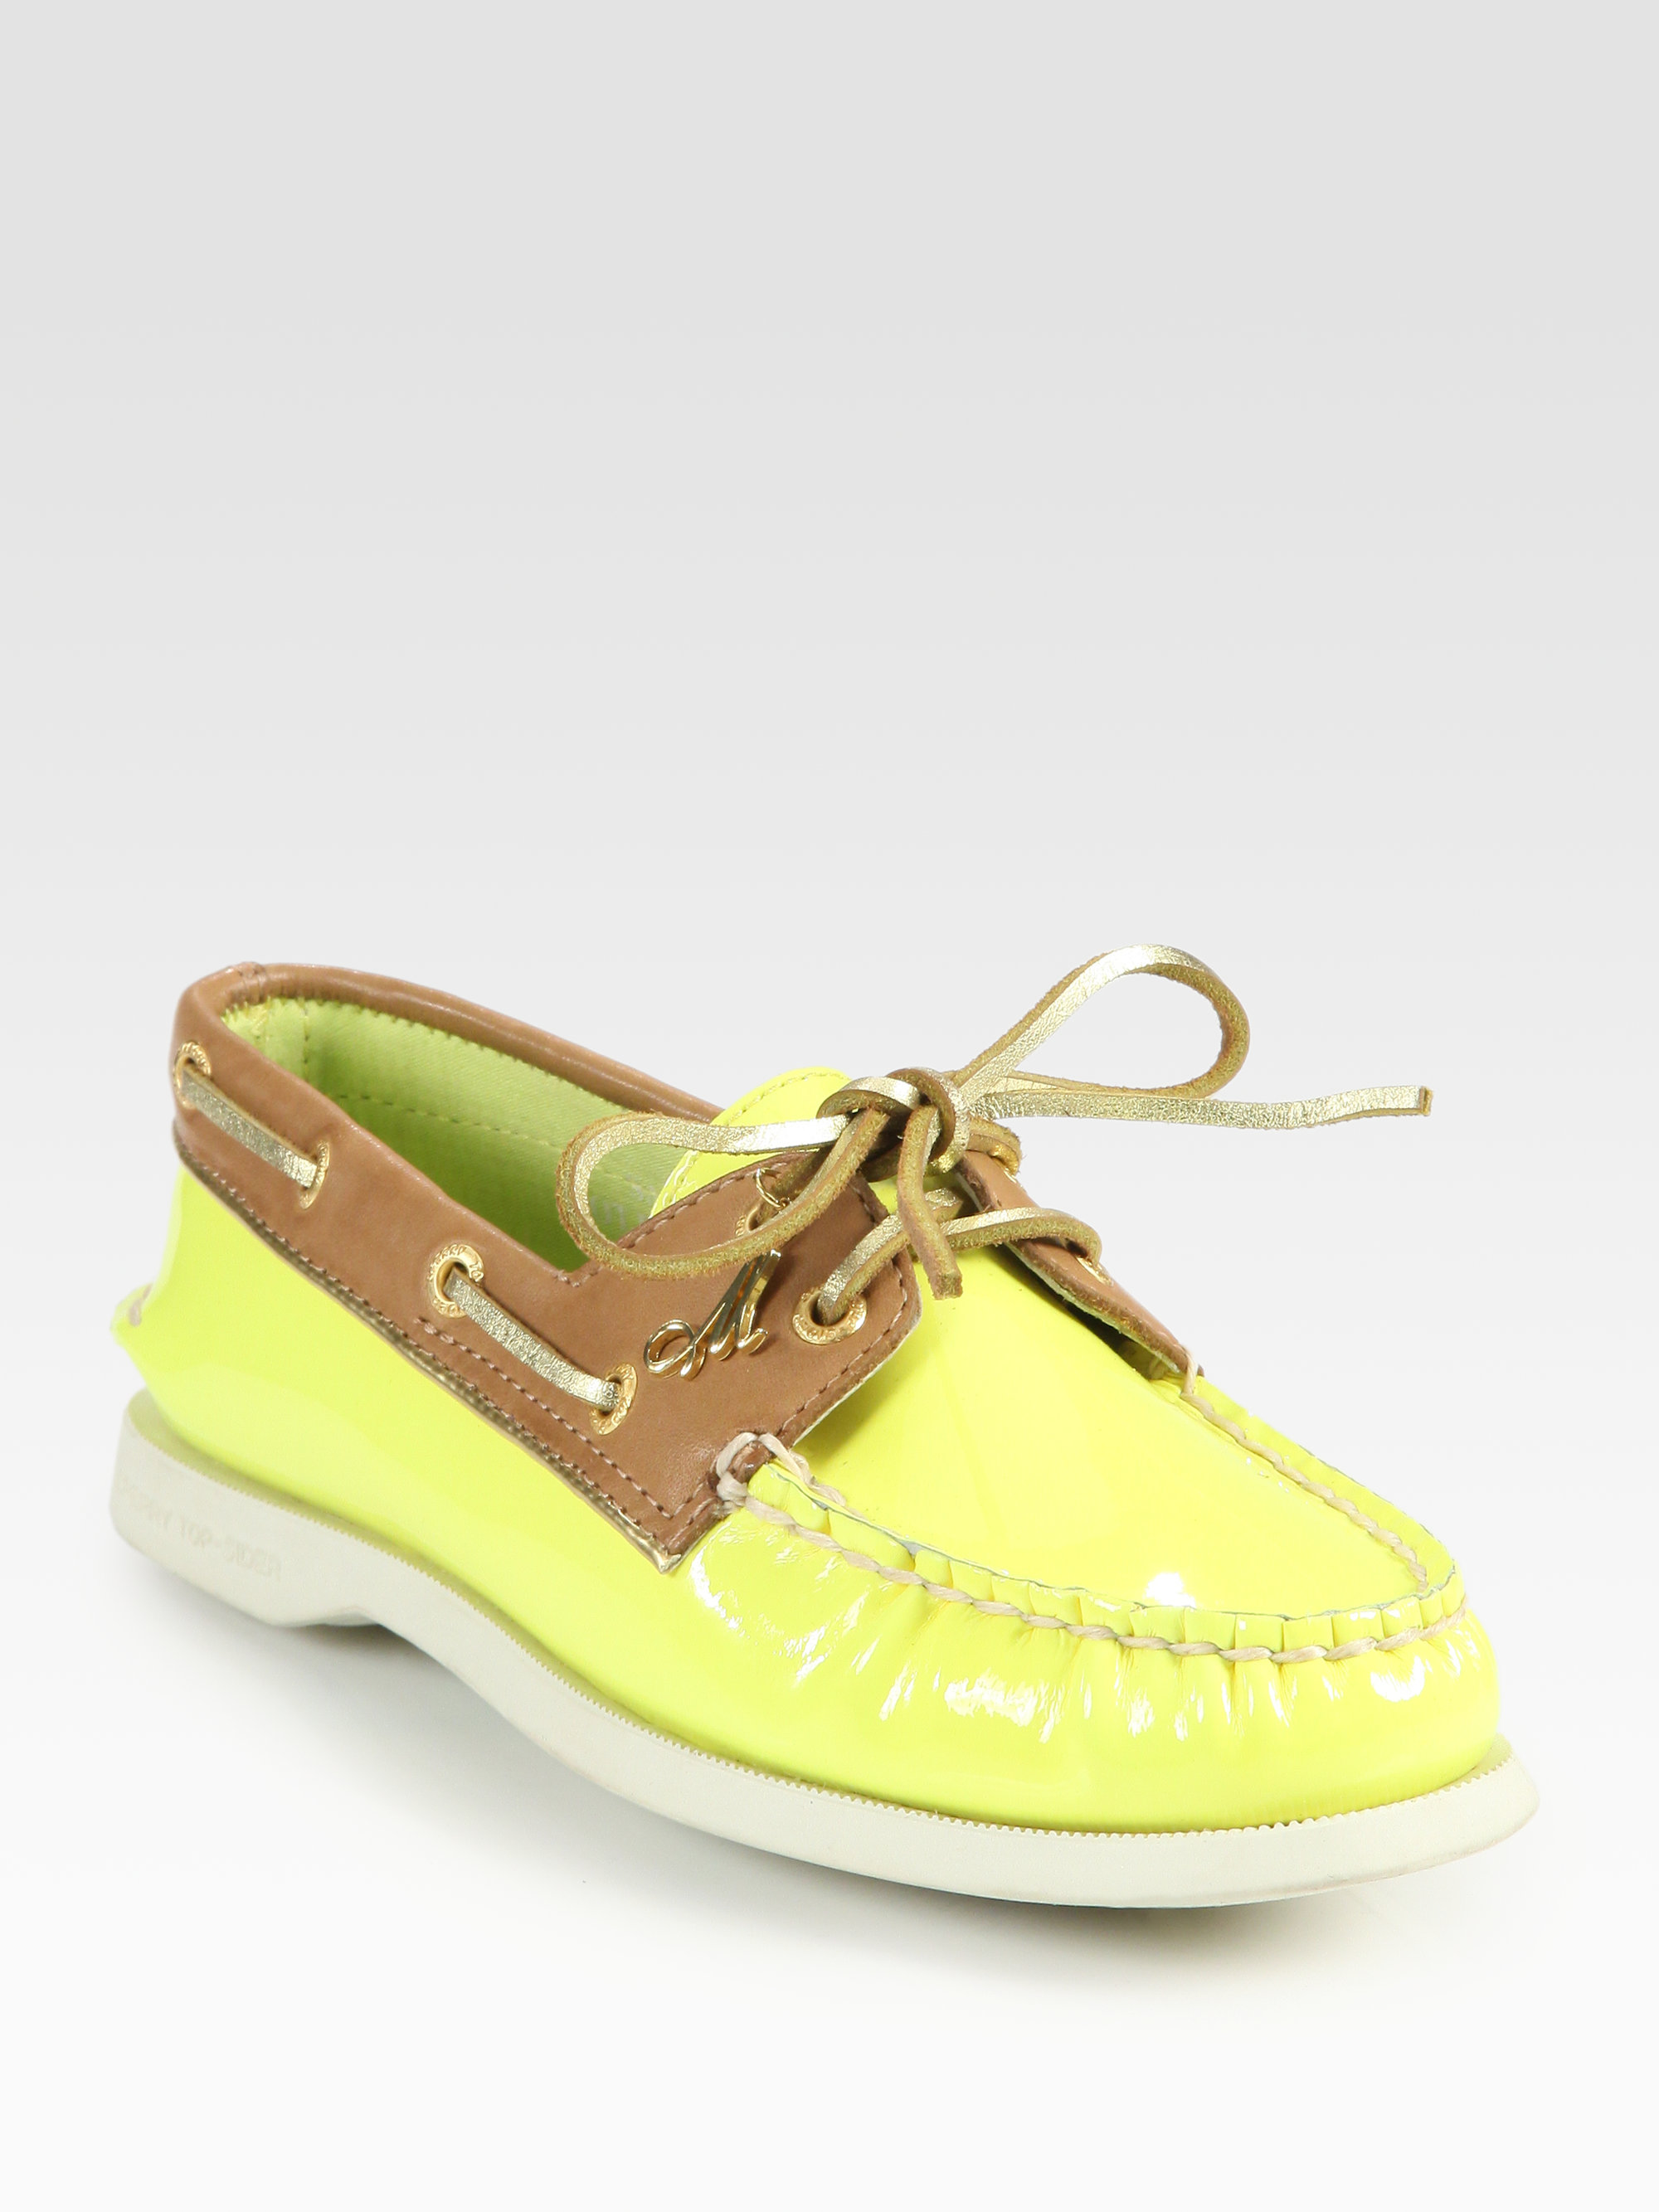 milly twotone patent leather leather boat shoes in green